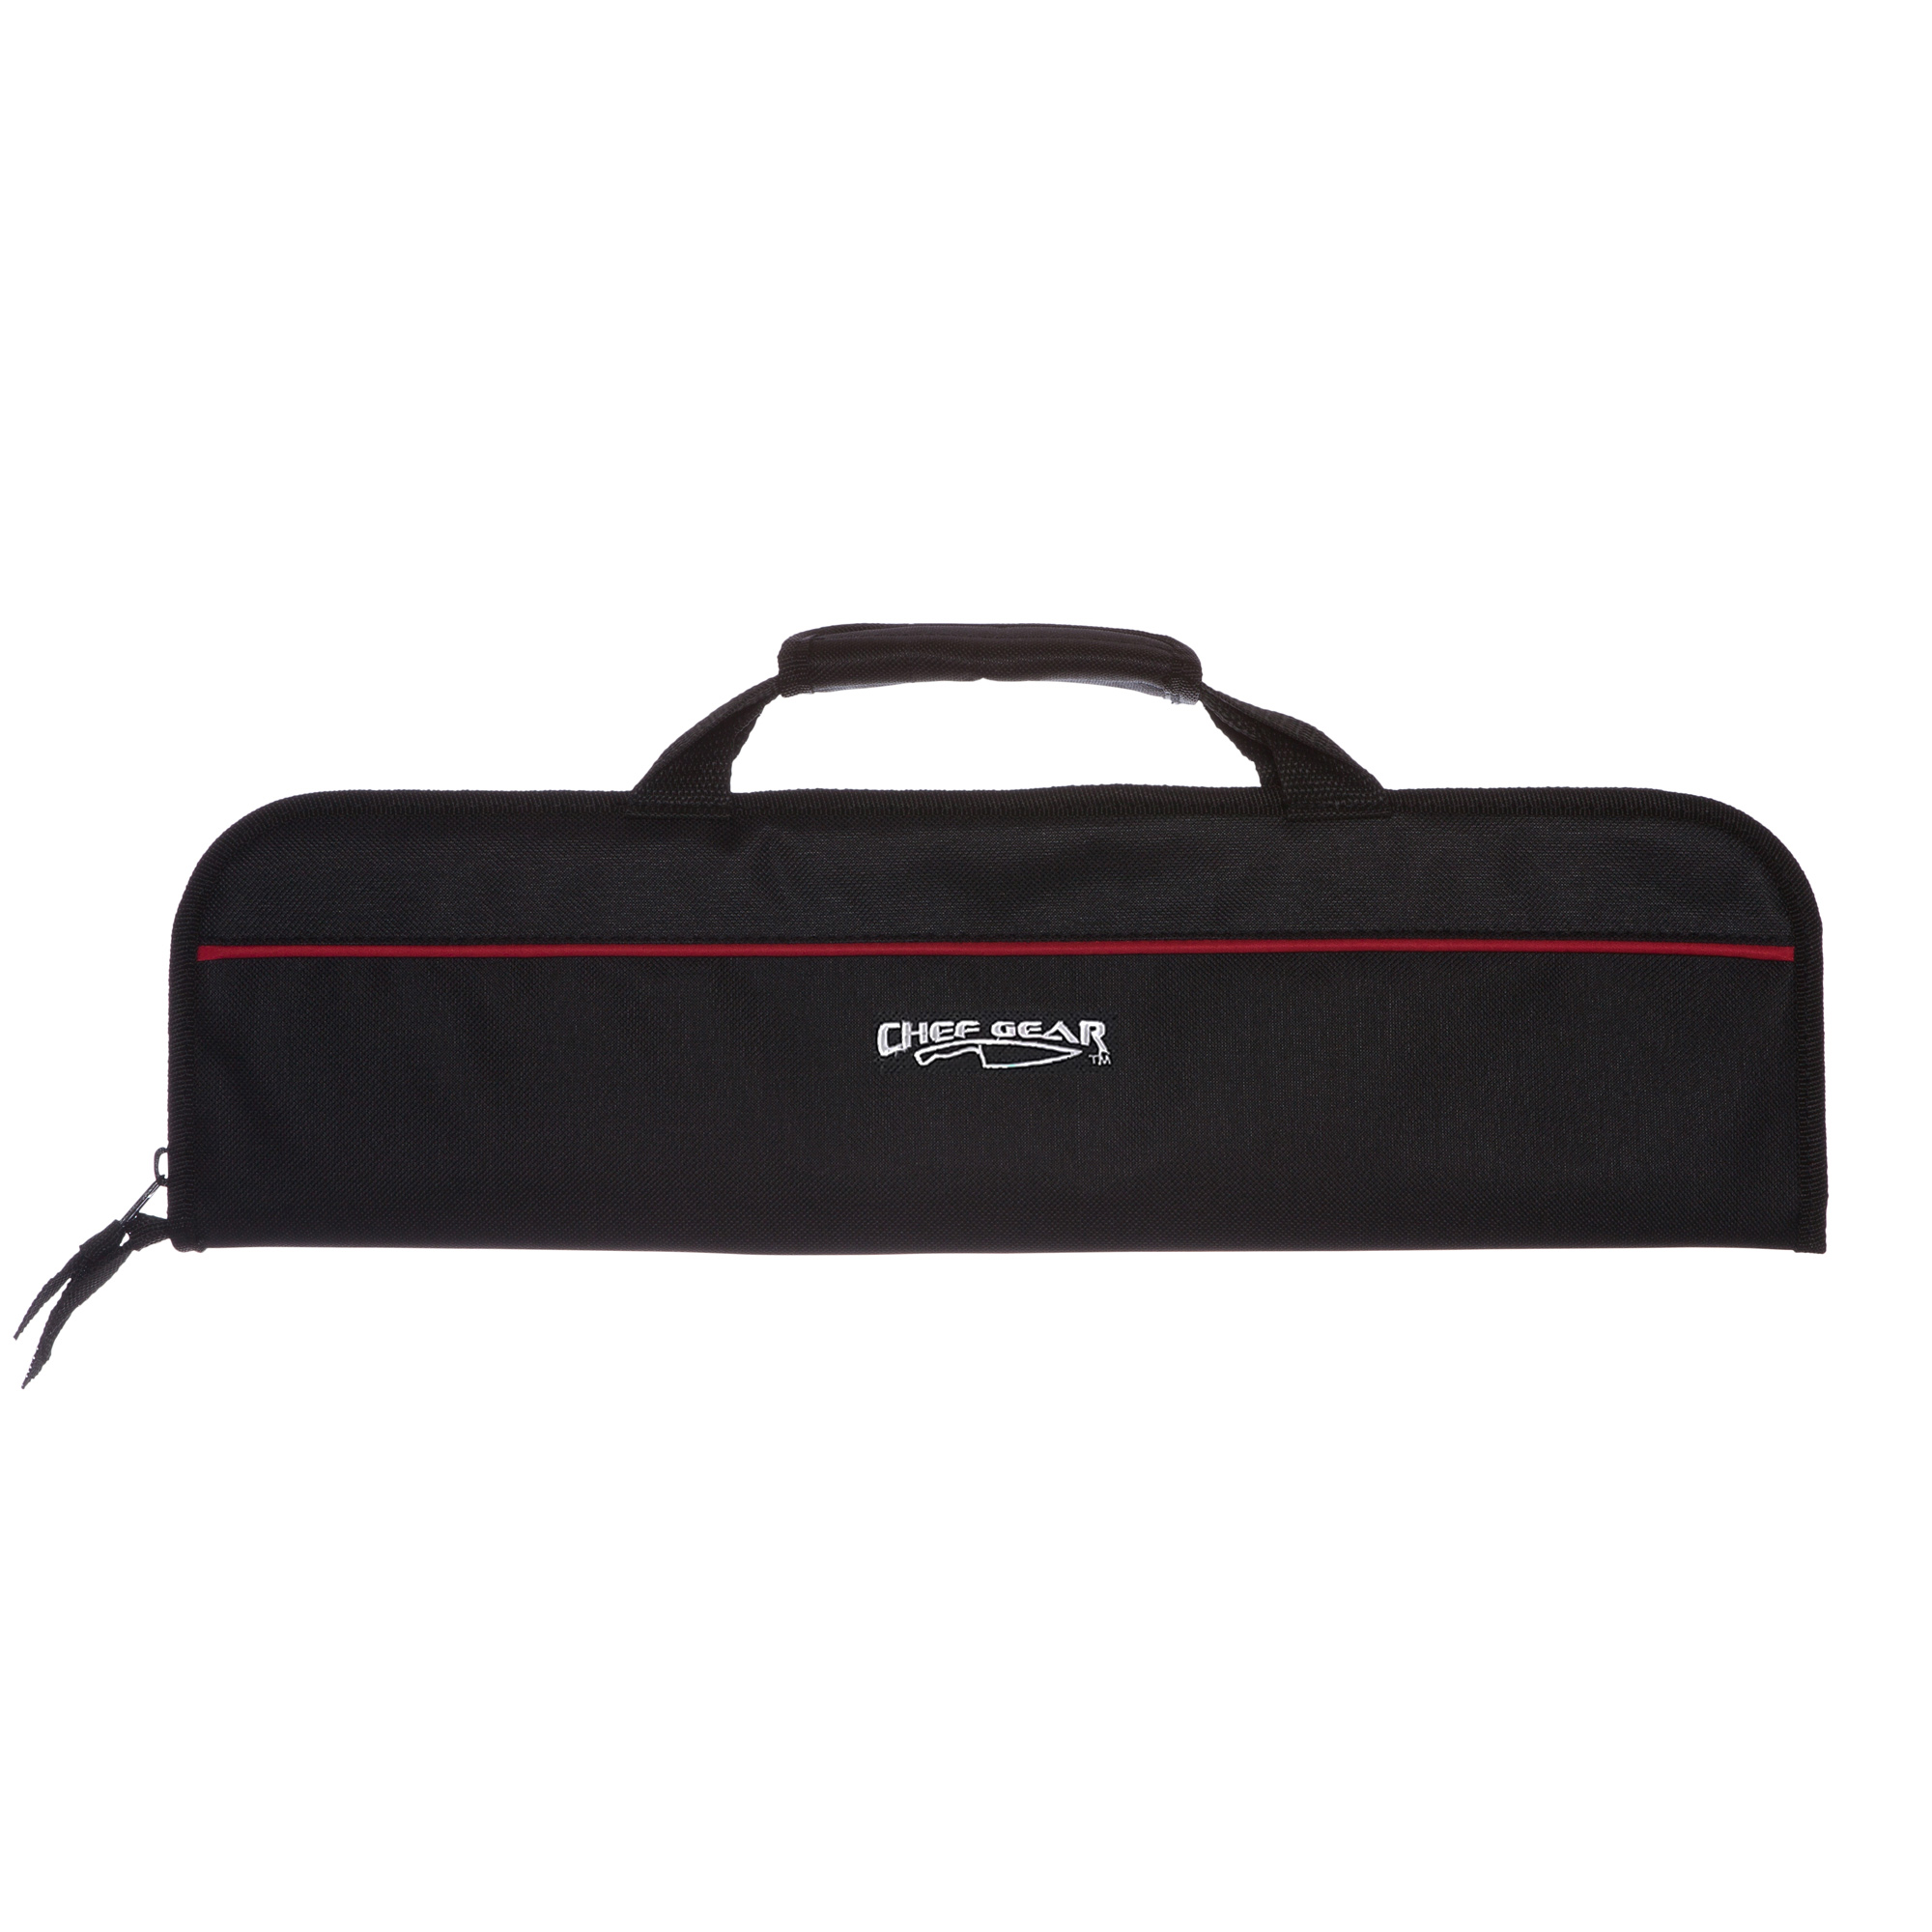 1005 Chef Gear Knife Roll Bag, Black, 5 Pocket